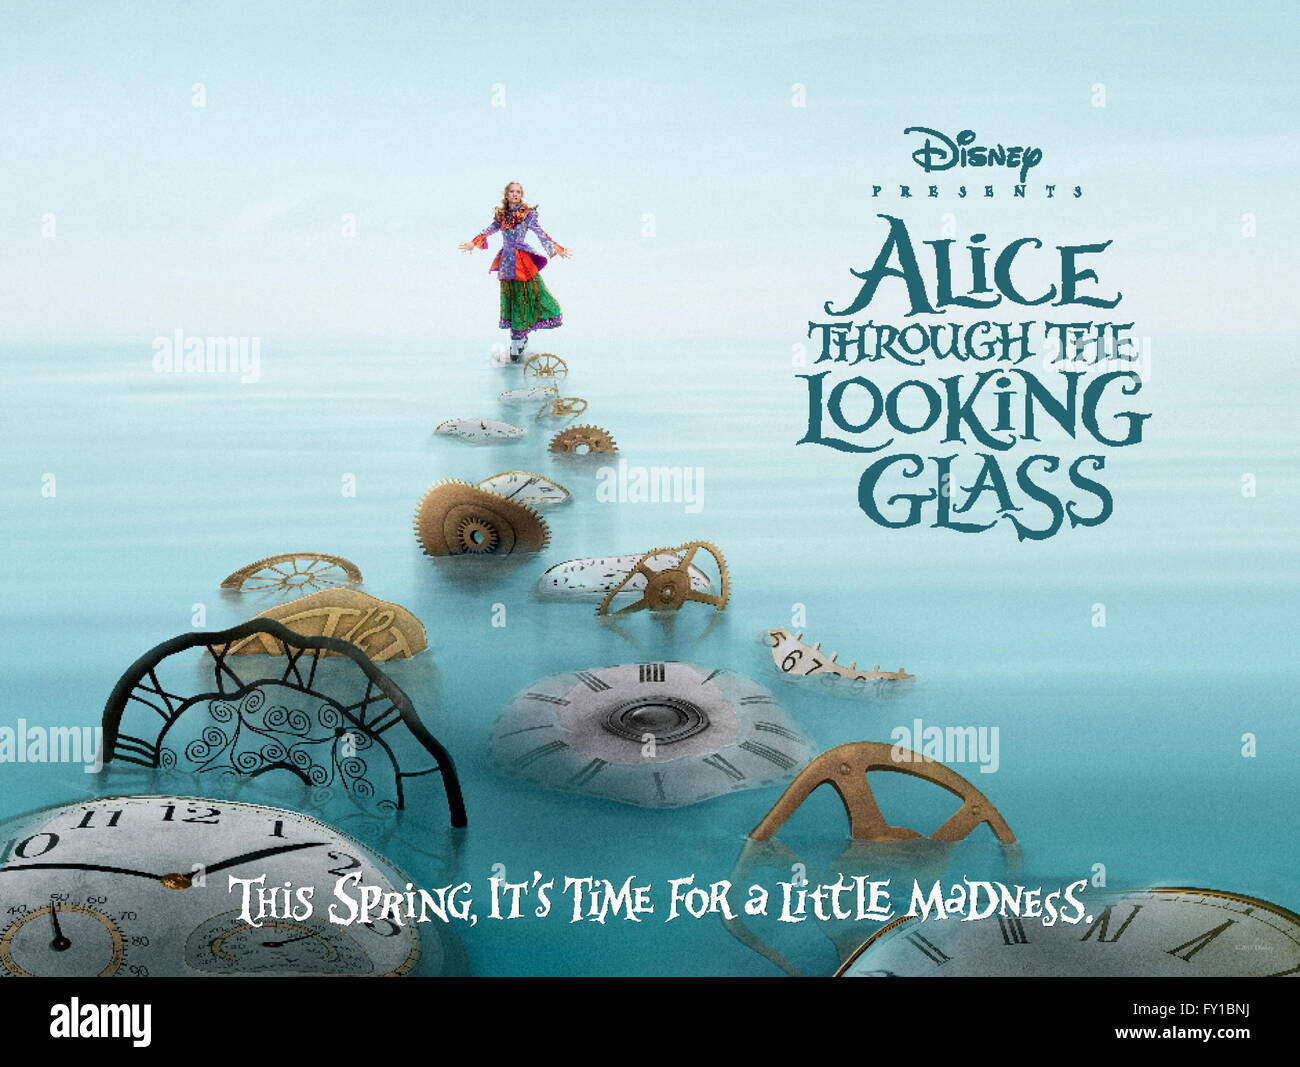 Alice Through The Looking Glass Release Date On Dvd